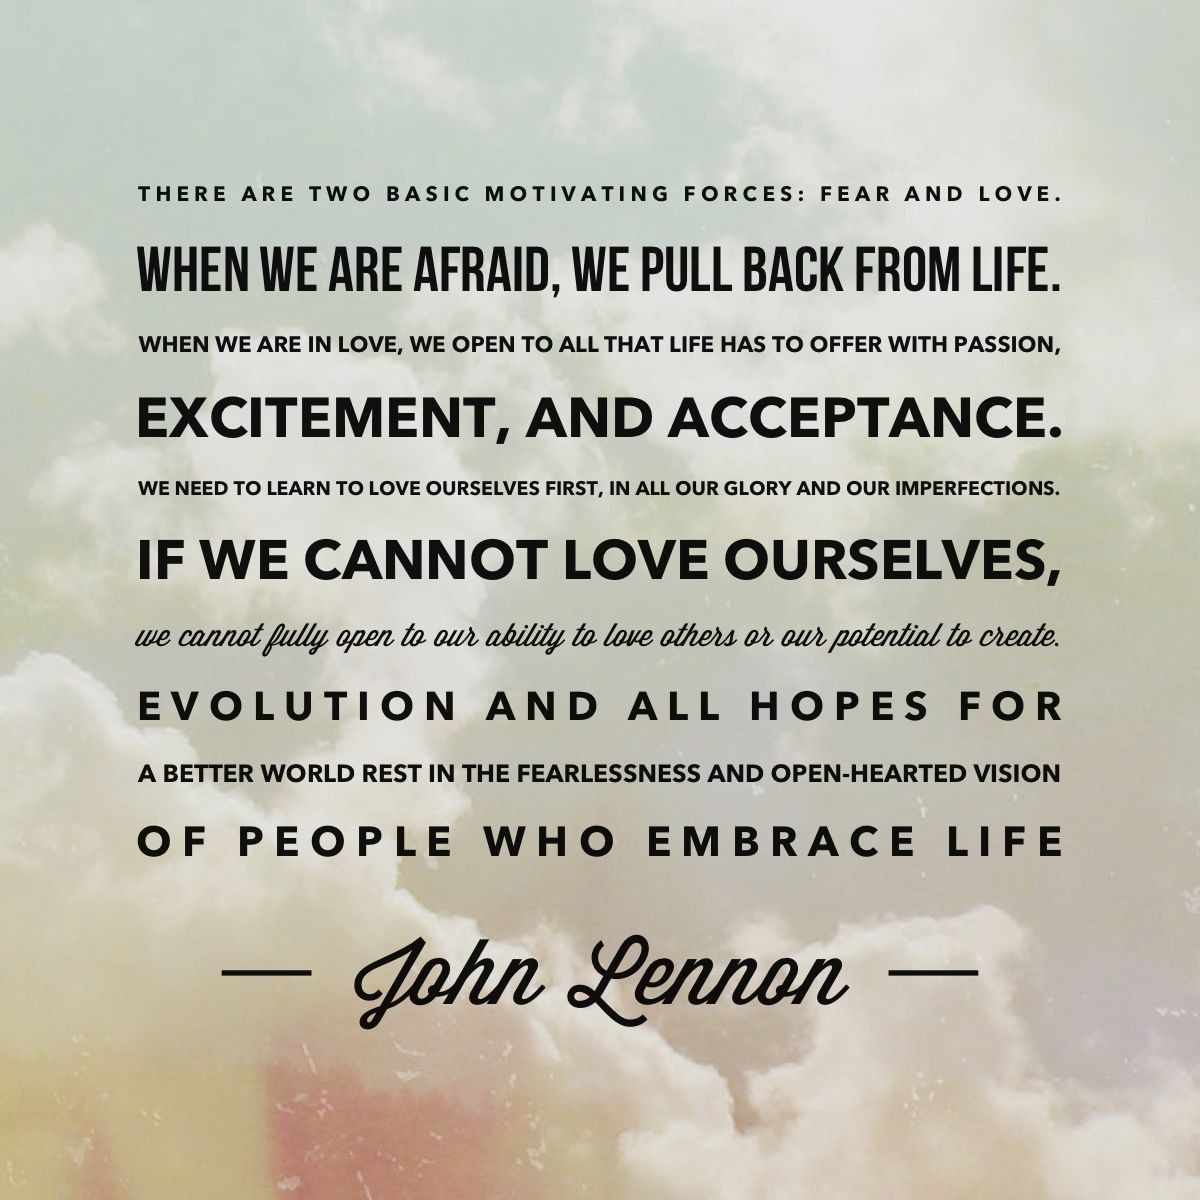 The Top 20 Ideas About Fear And Love Quotes John Lennon Quotes Fear Quotes Love Quotes